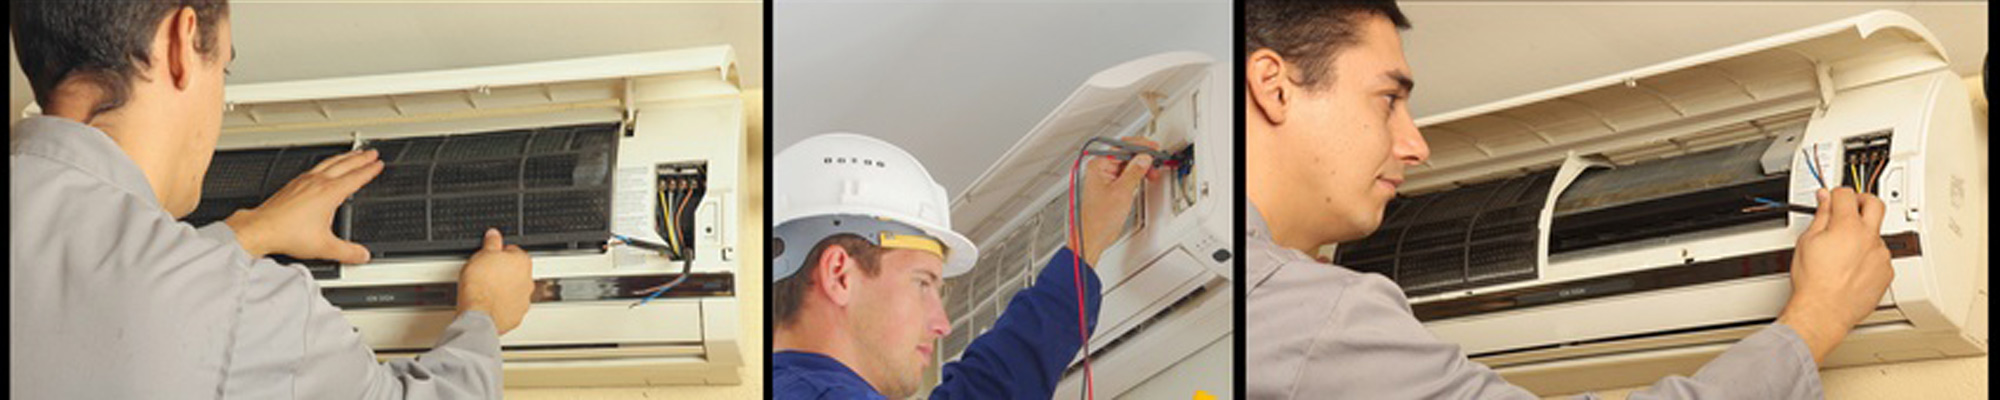 Electrician Air Conditioning Install